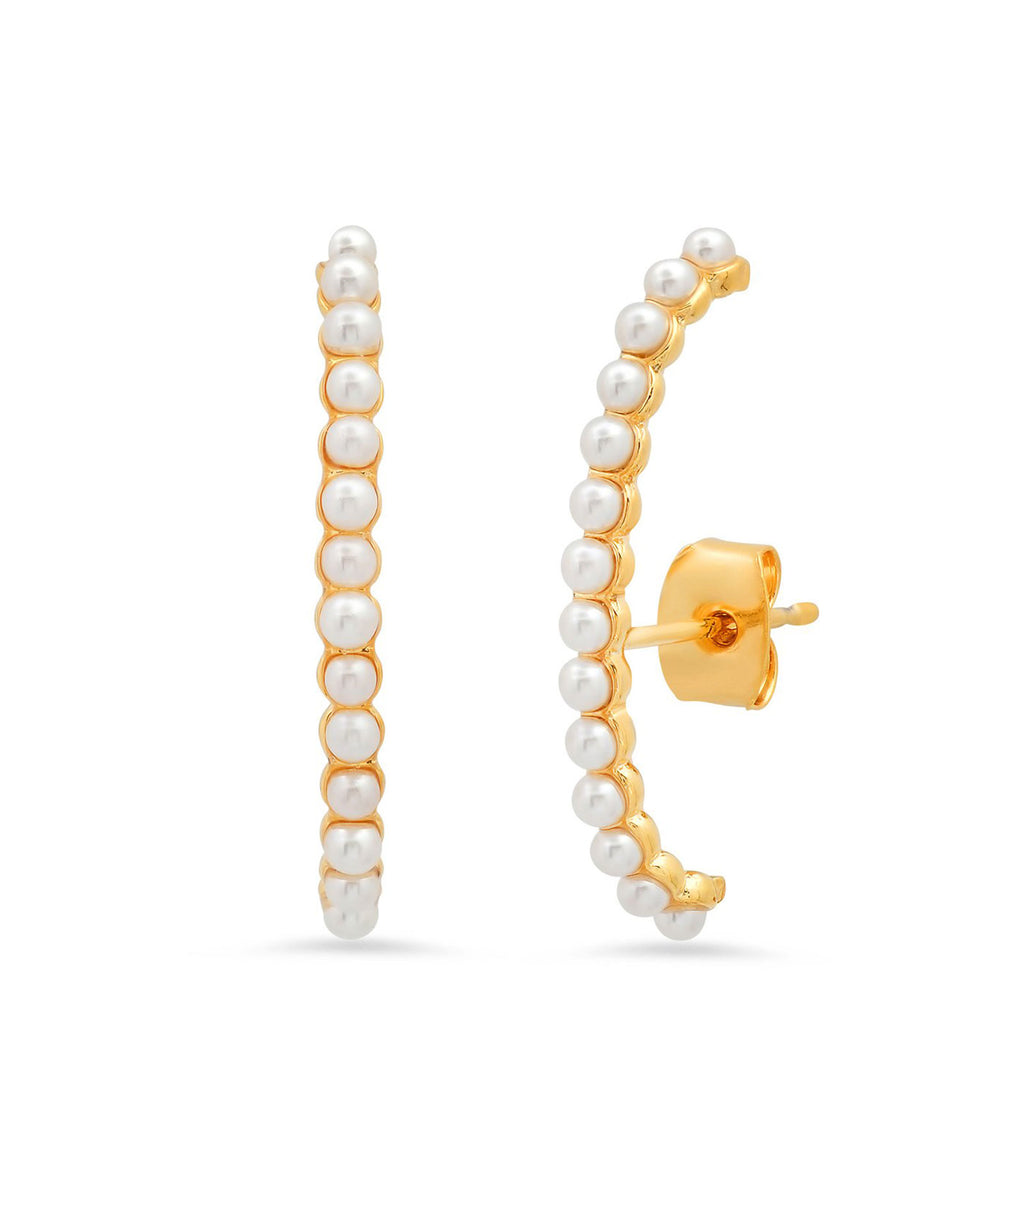 TAI Gold Bar Pearl Cuff Earrings